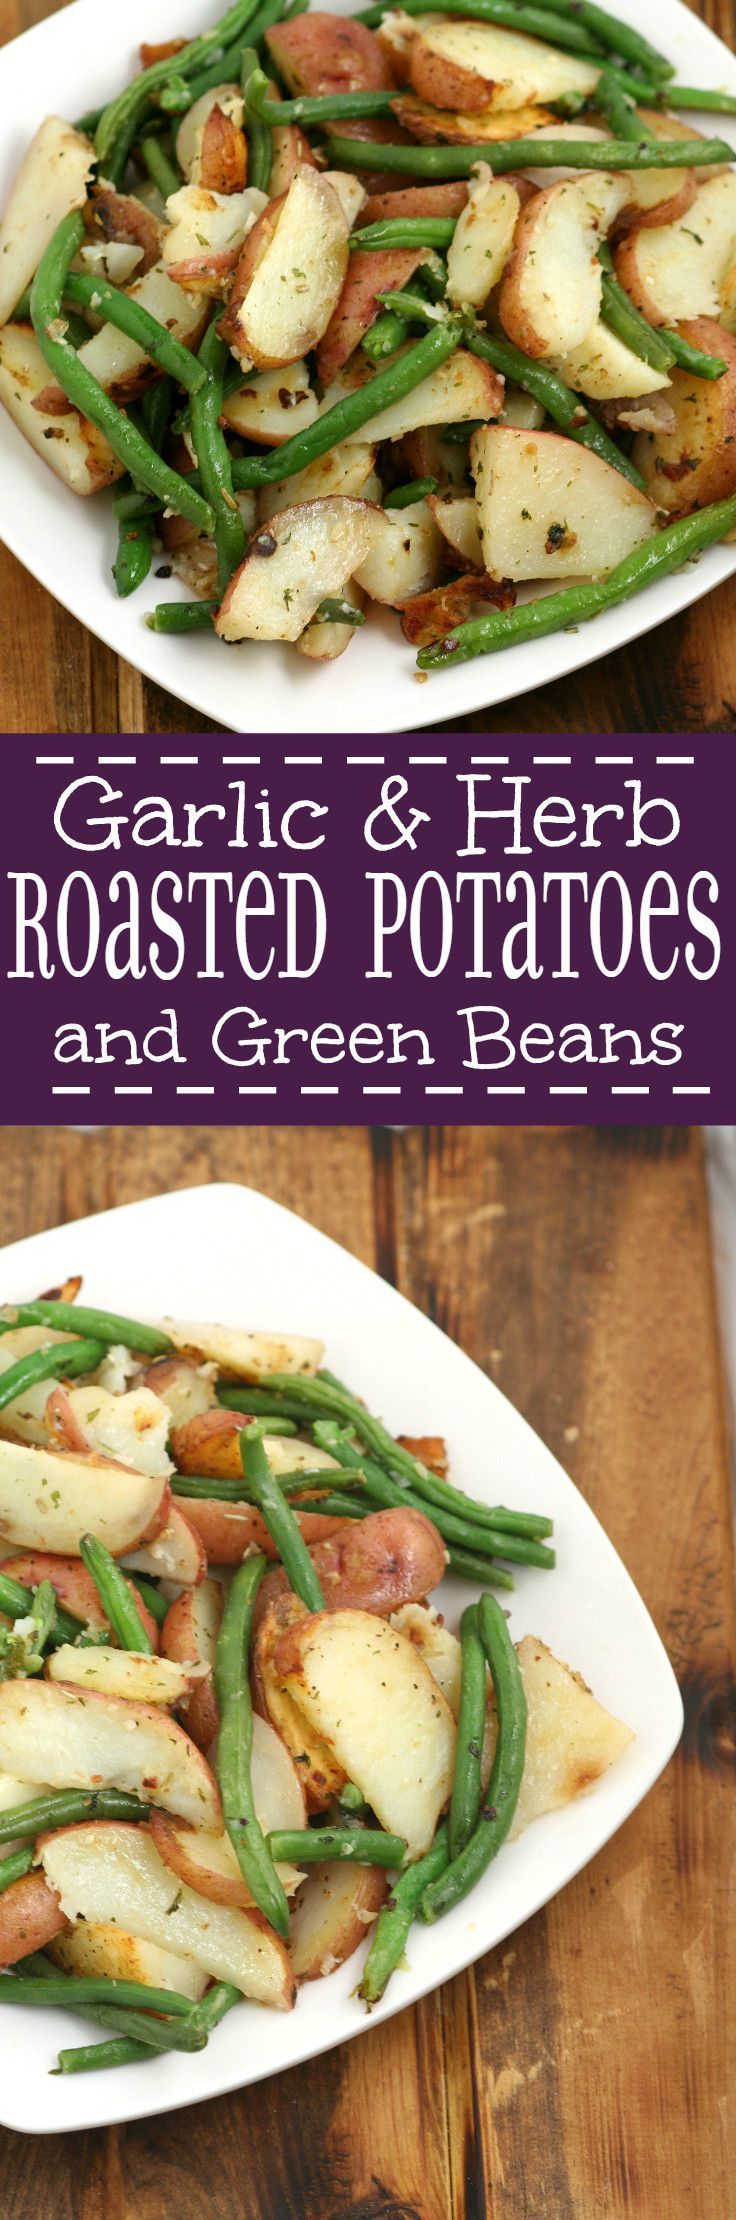 Herb Roasted Potatoes and Green Beans Garlic Herb Roasted Potatoes and Green Beans - an easy, healthy side dish recipe with potato and vegetable. Great for dinner, potlucks, or a party!Garlic Herb Roasted Potatoes and Green Beans - an easy, healthy side dish recipe with potato and vegetable. Great for dinner, potlucks, or a party!